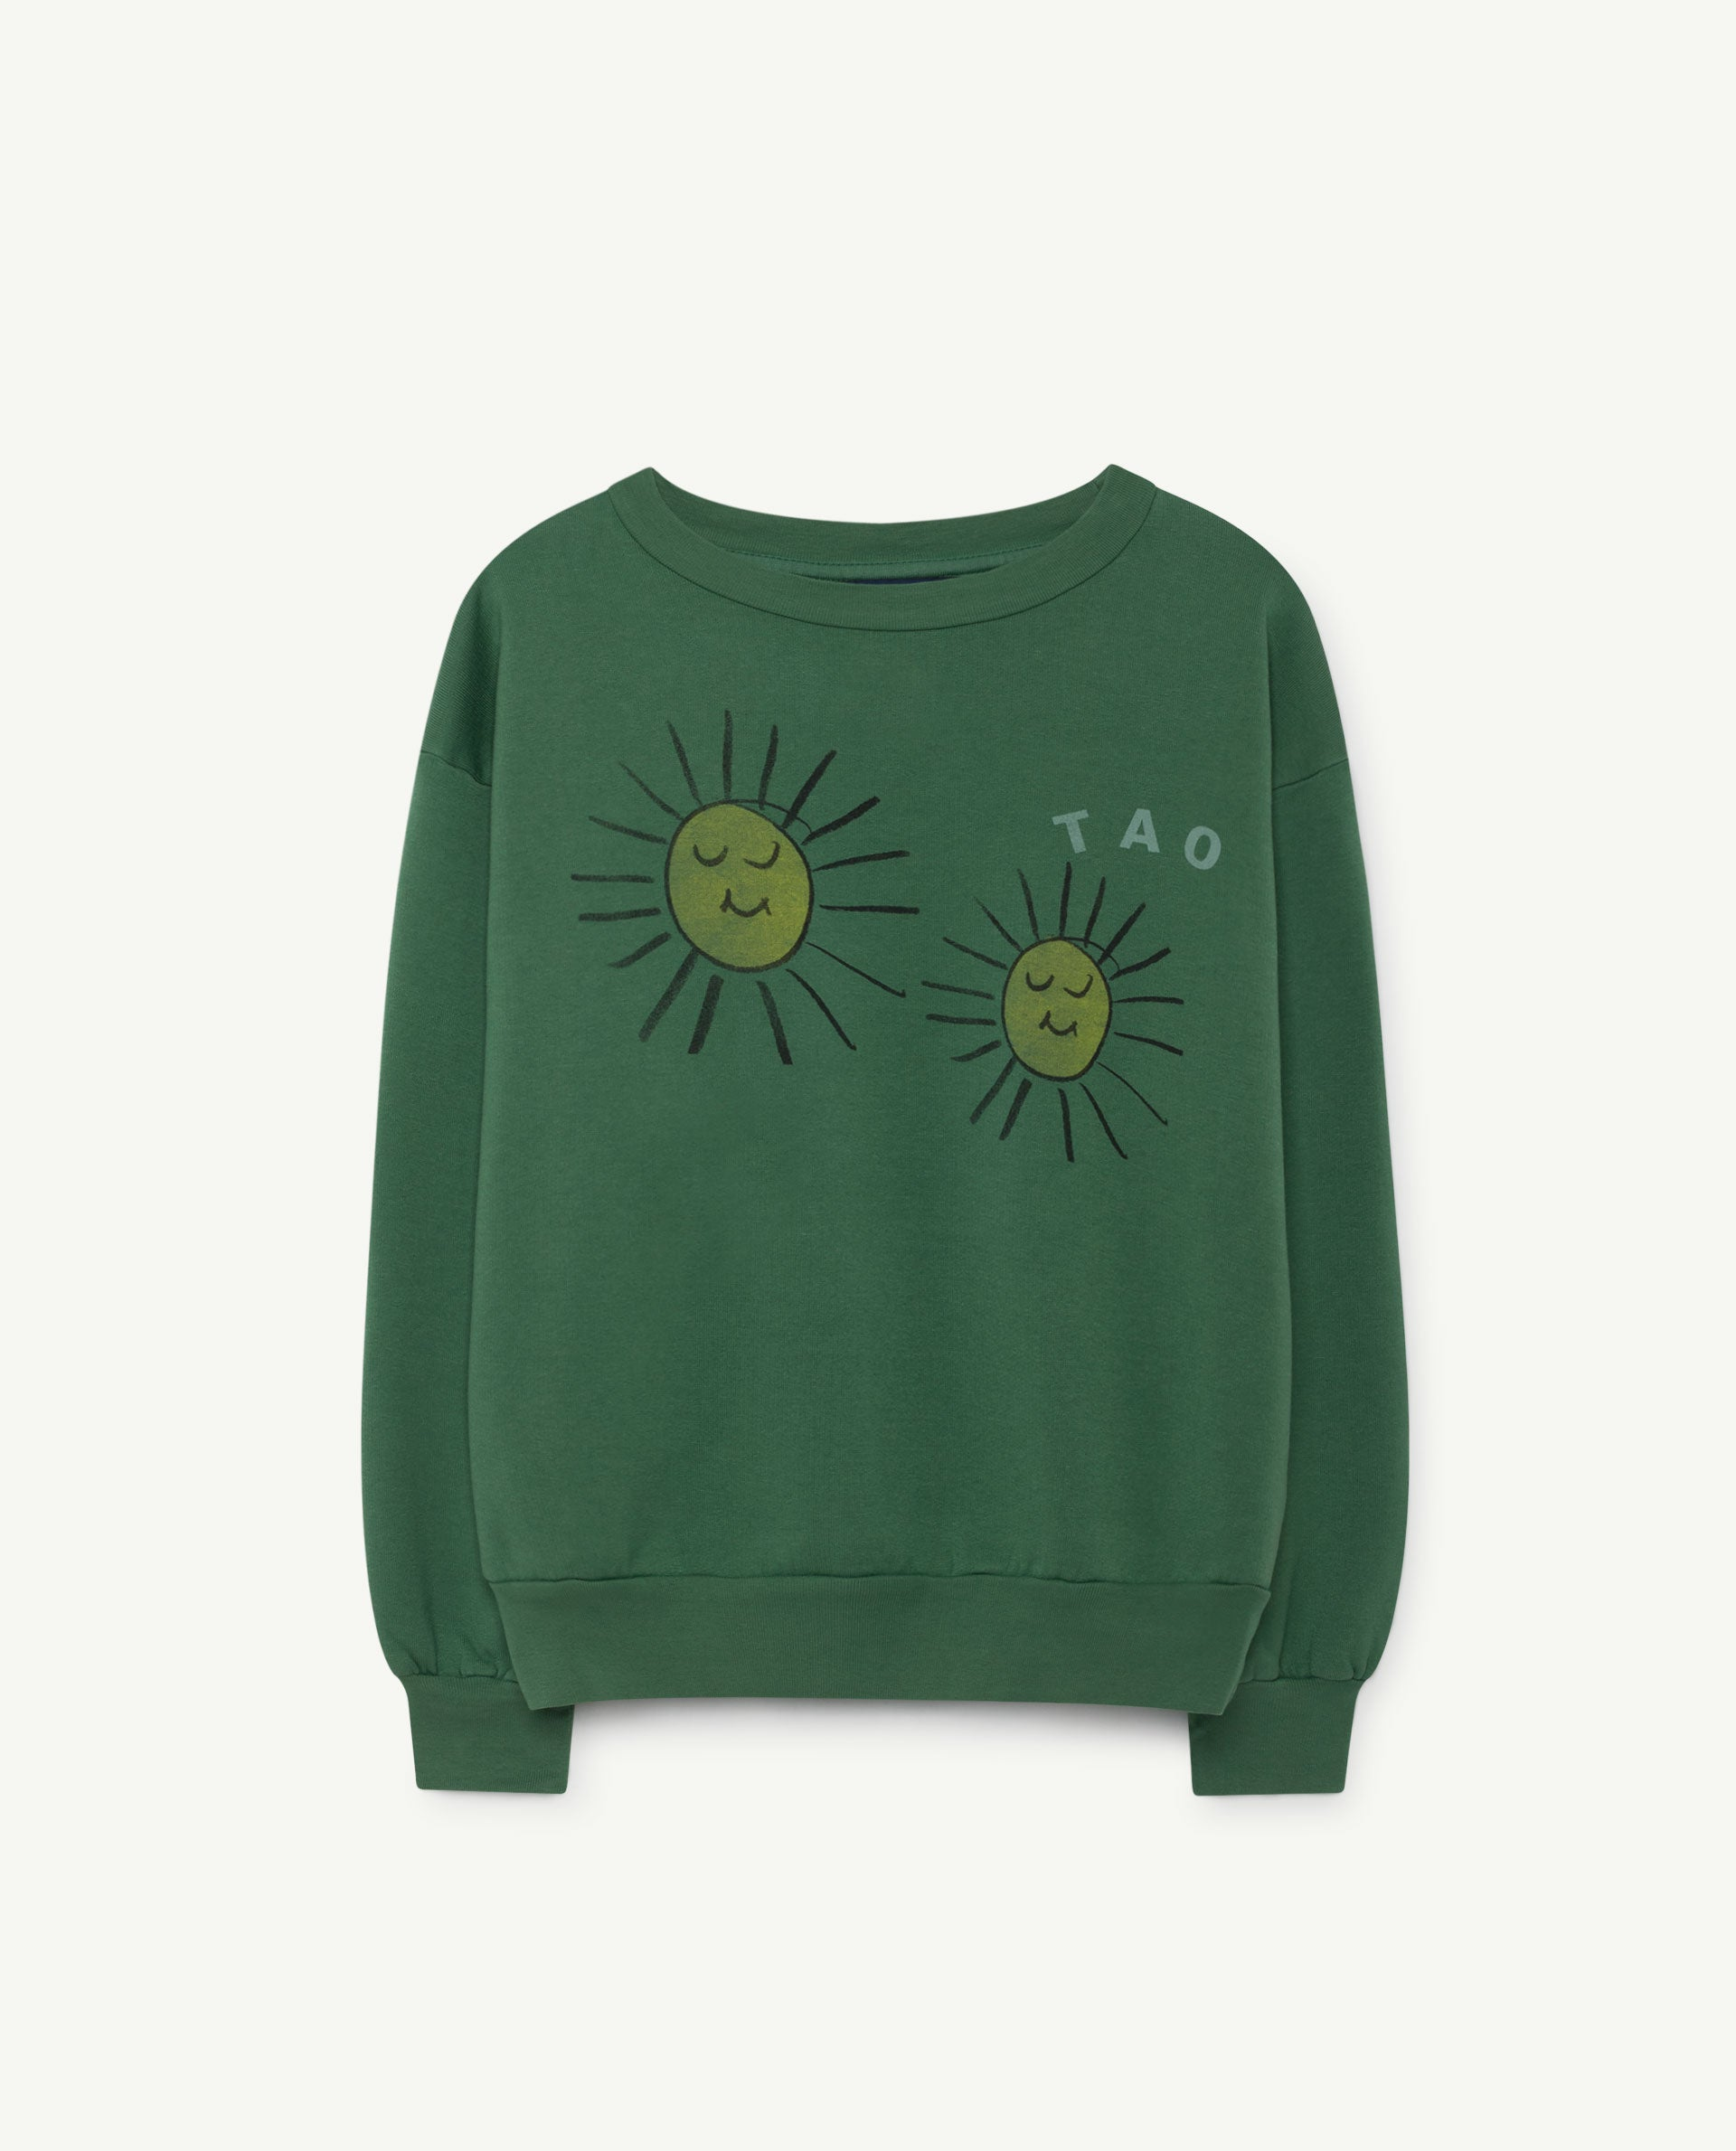 The Animals Observatory Bear Sweater - Green/Yellow Suns